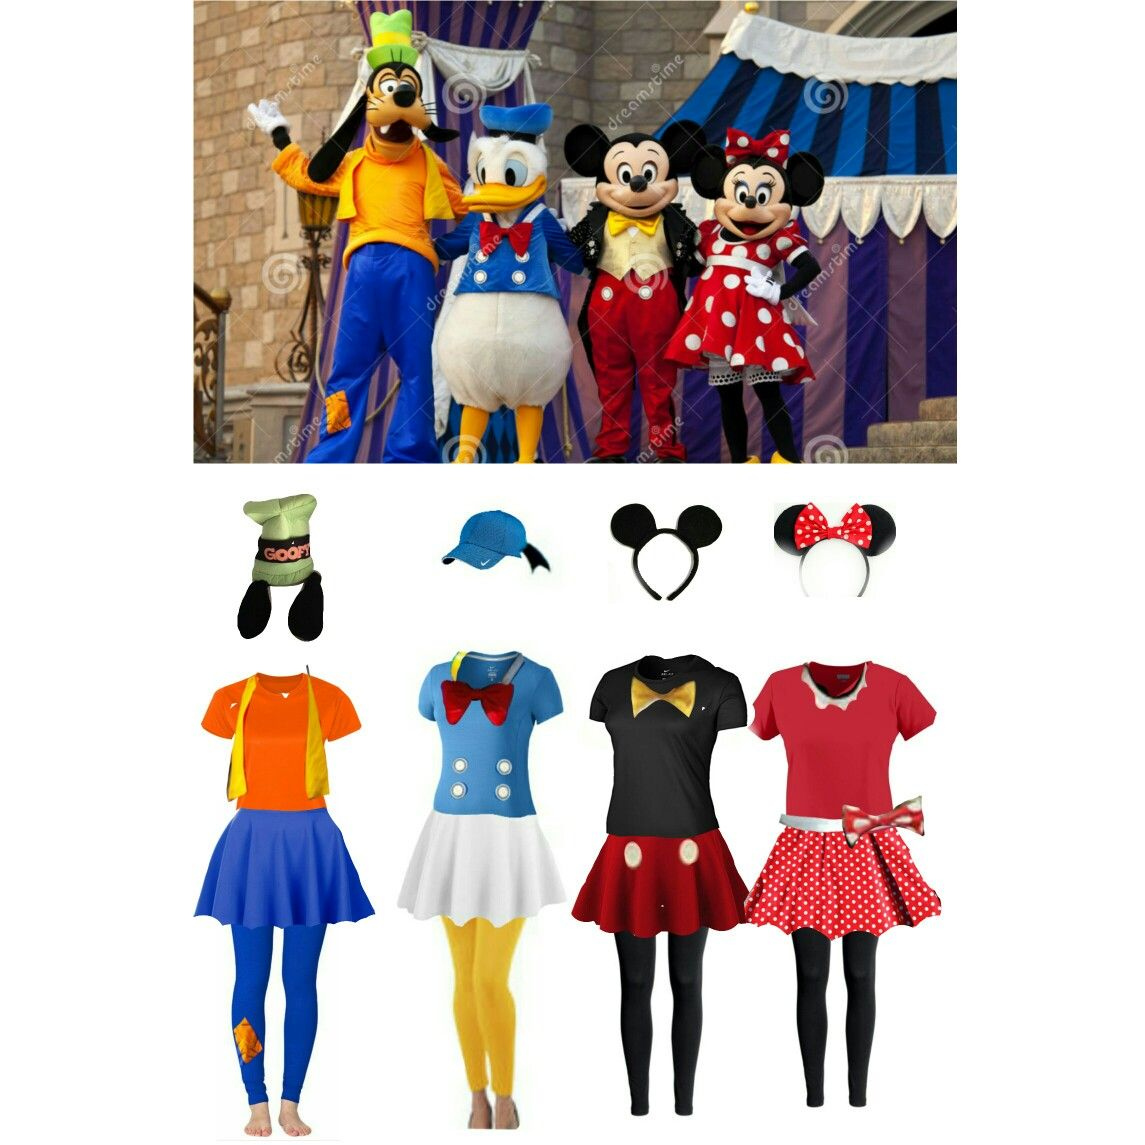 Disney Goofy Donald Duck Mickey Mouse and Minnie Mouse running costumes  sc 1 st  Pinterest & Disney Goofy Donald Duck Mickey Mouse and Minnie Mouse running ...